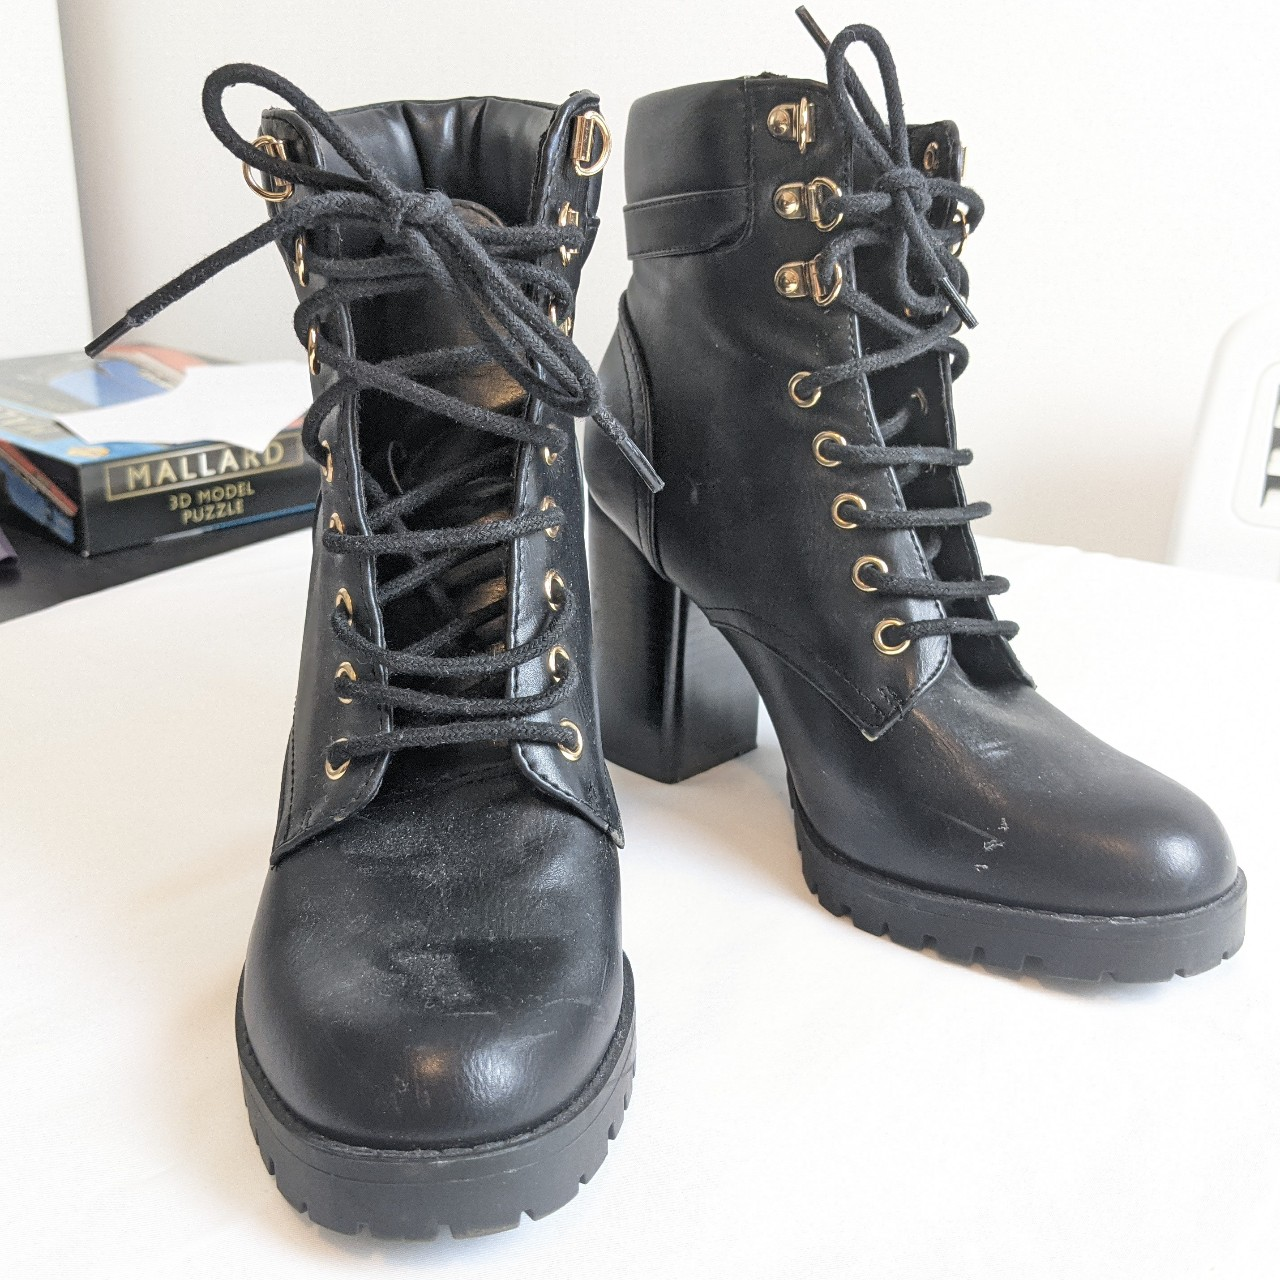 Product Image 1 - Primark lace-up ankle boots. 4 inch